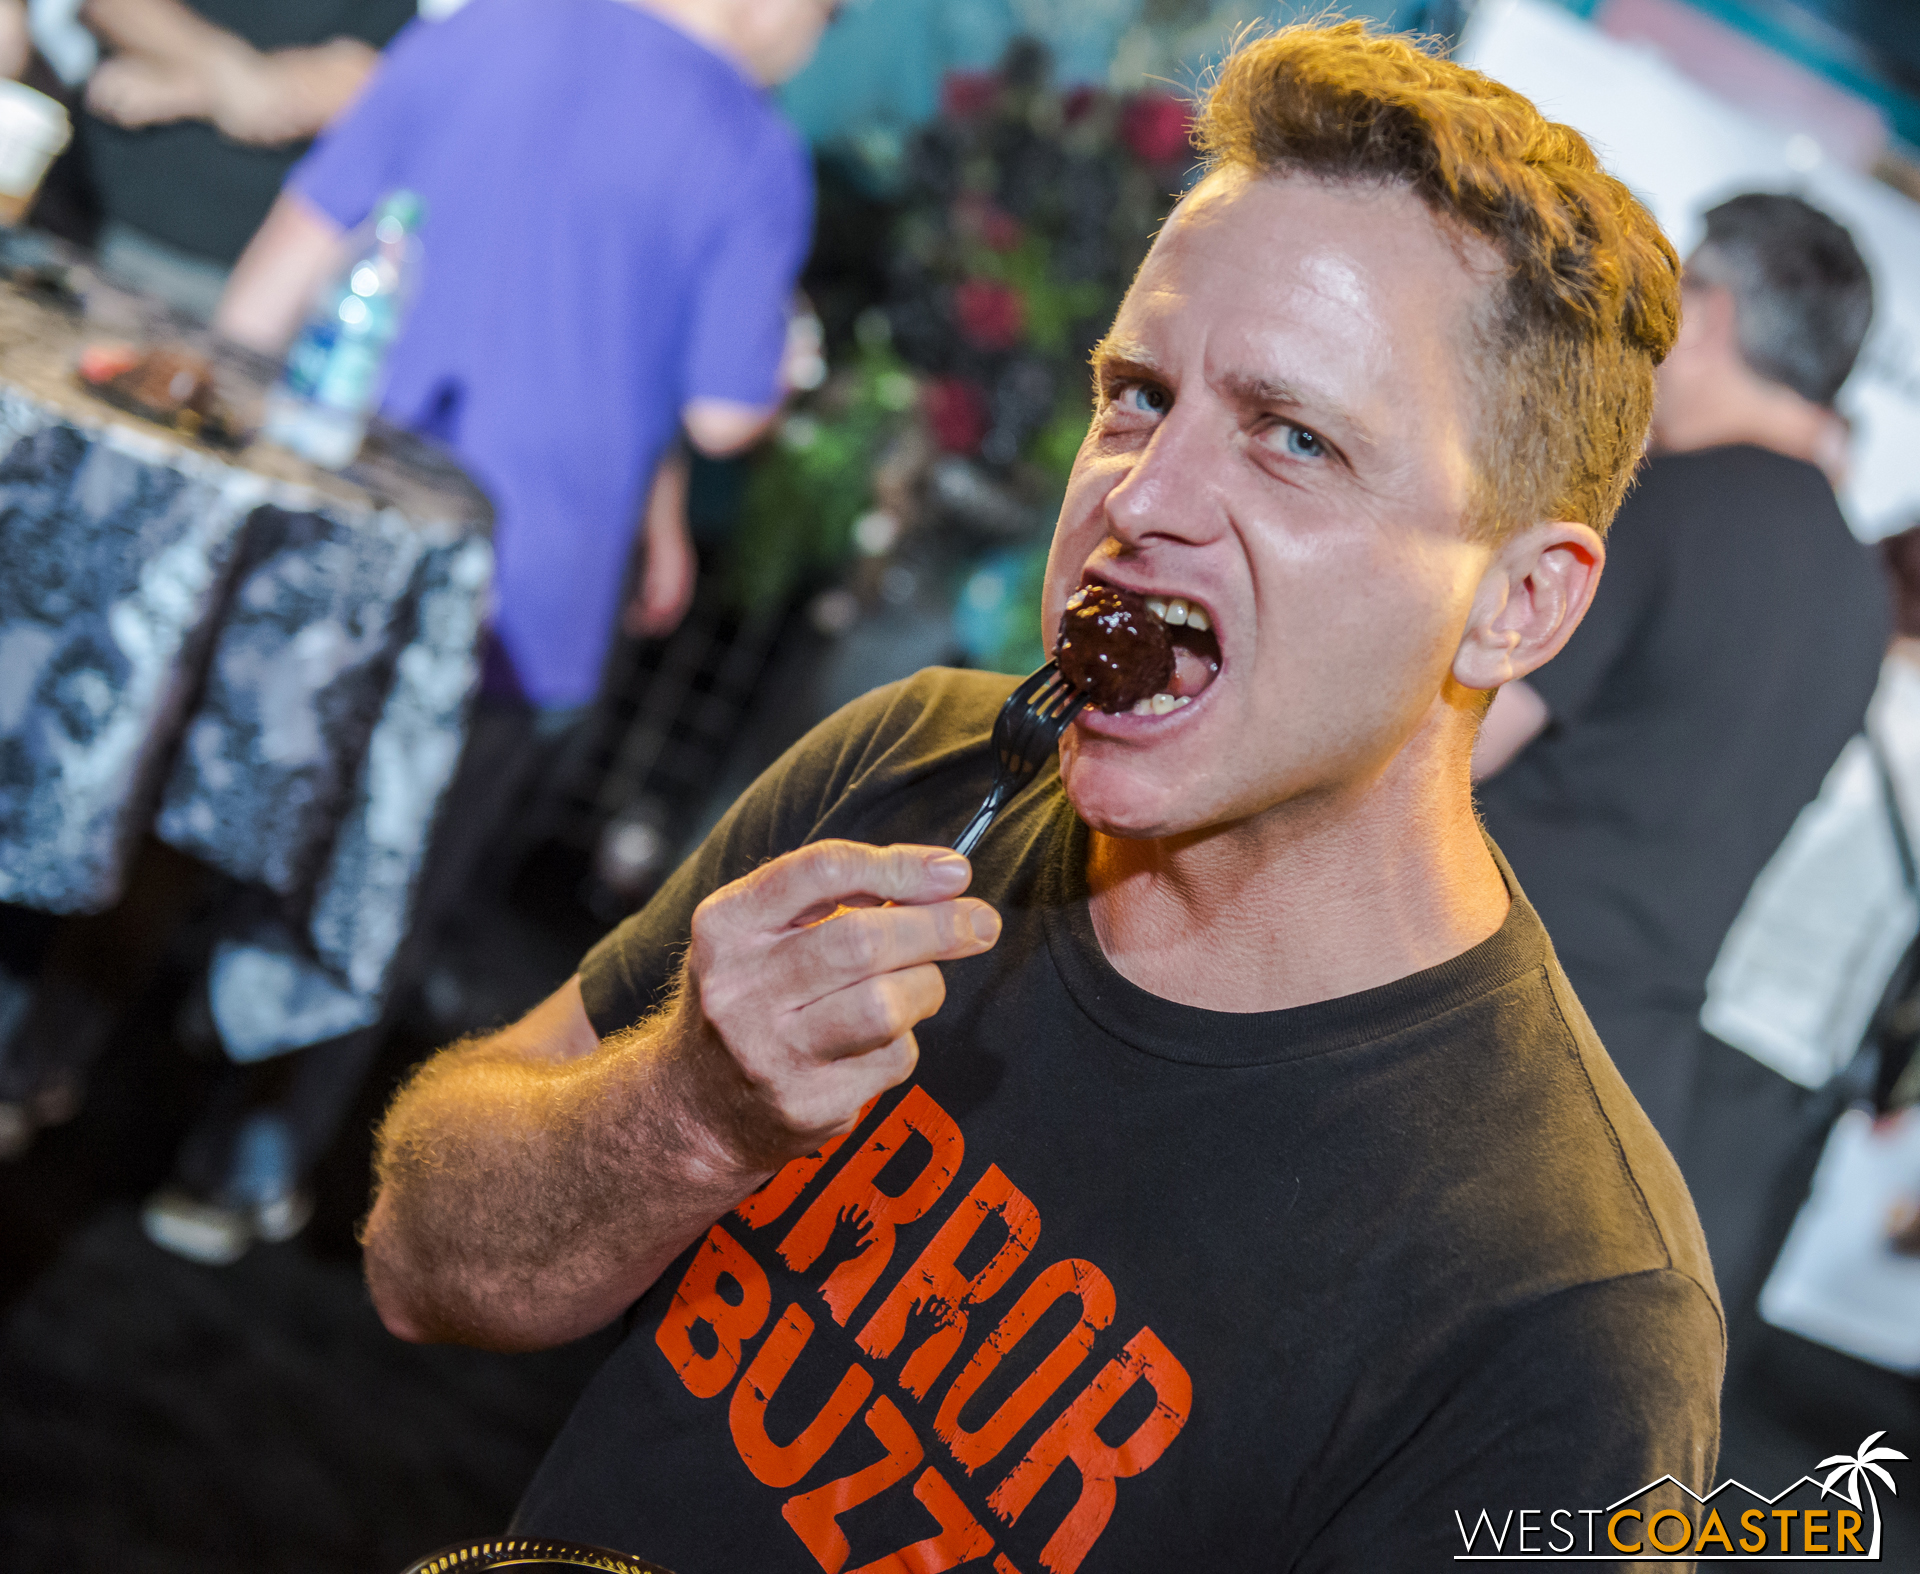 """Last but not least, Horror Buzz's Norm reminds you that there's no greater joy than stuffing a sweet, juicy, flavorful [boysenberry] meatball right into your mouth.  Absolutely delicious.  (Oh, and speaking of Horror Buzz, they're offering a really cool """"  Passport to Fear  """" promotion that will give purchasers a """"golden ticket"""" of sorts to special Horror Buzz events at several of Southern California's best haunts, such as Knott's Scary Farm but also Fright Fest, Dark Harbor, and even Winchester Mystery House. These events include behind the scenes tours, special access and early guest previews, and food and bevvies. It's a pretty cool deal, and I'd definitely recommend it for any haunted attraction fan!)"""